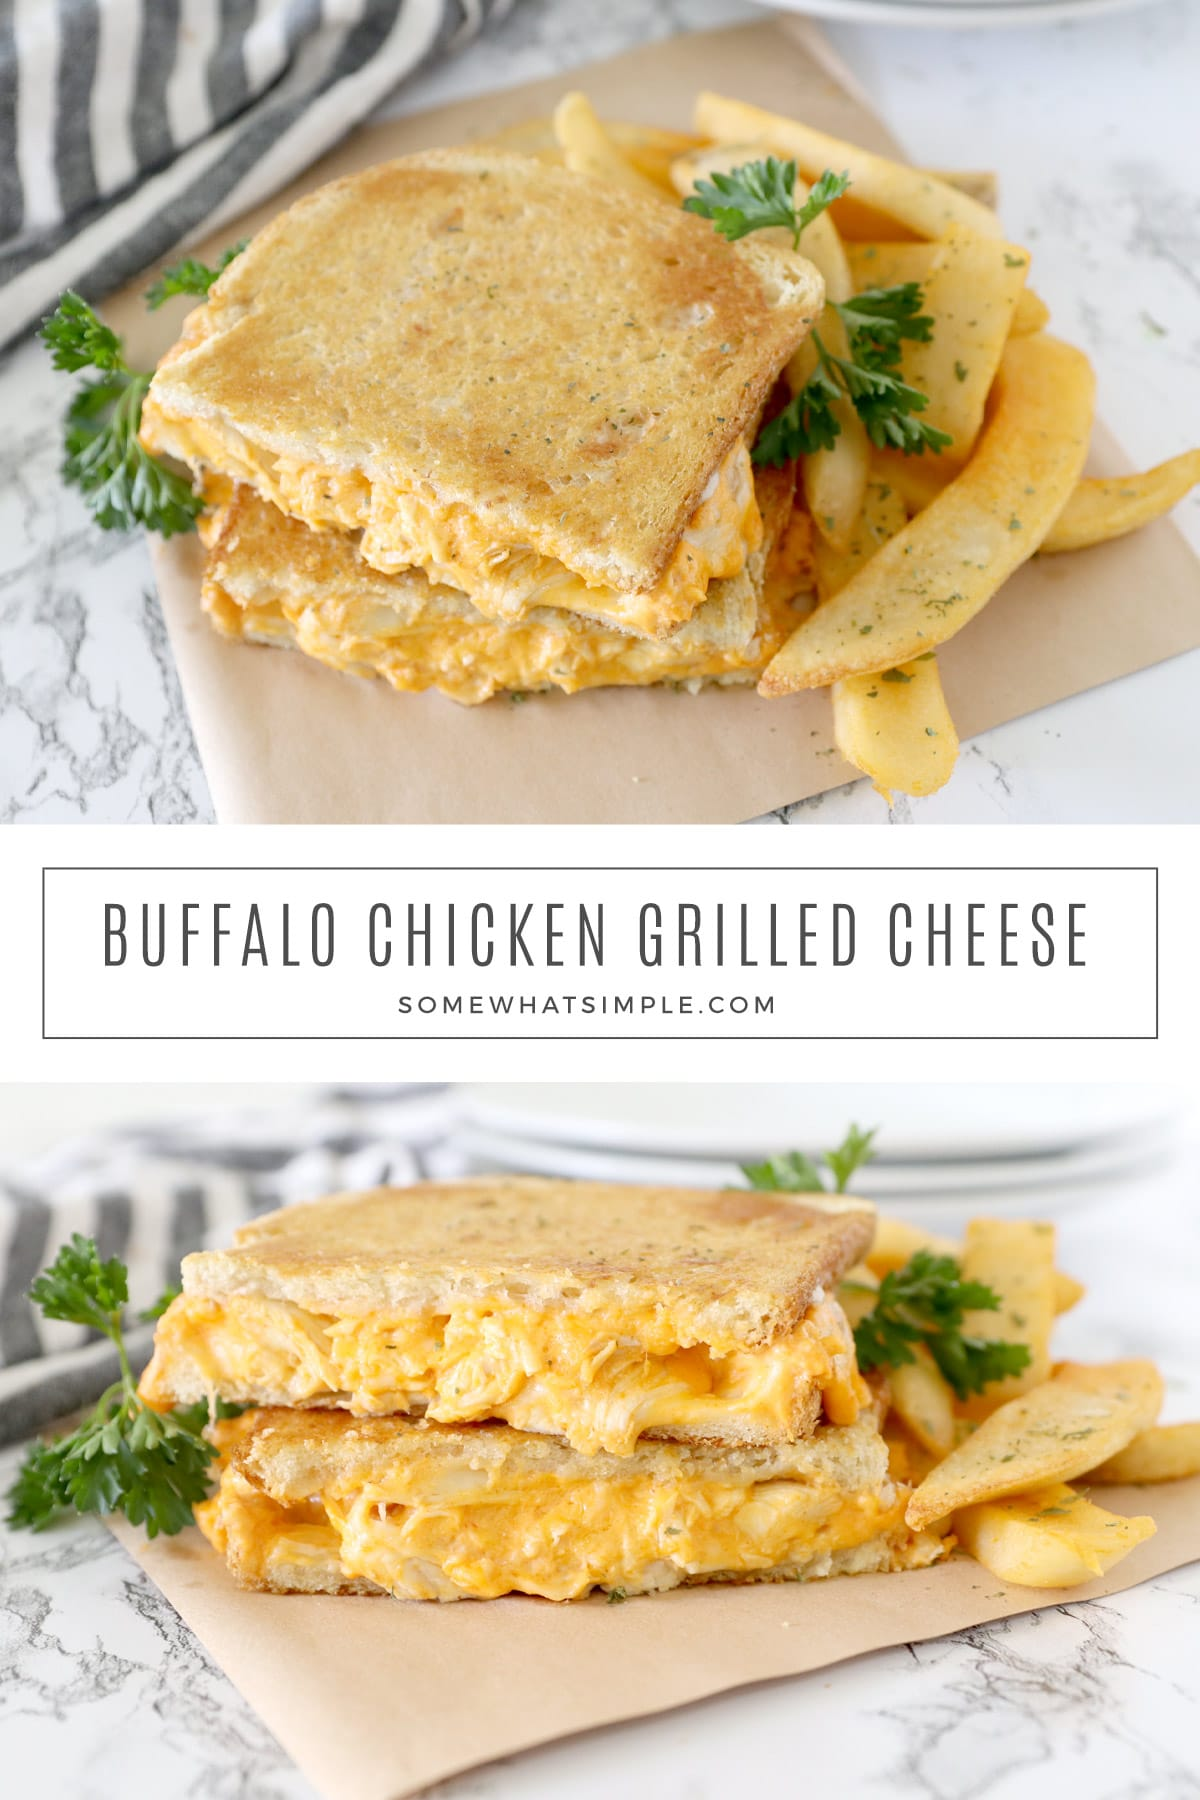 Grilled cheese sandwiches are a popular meal in my home, but when I make them for me and my husband, I add a secret ingredient that changes {almost} everything. via @somewhatsimple